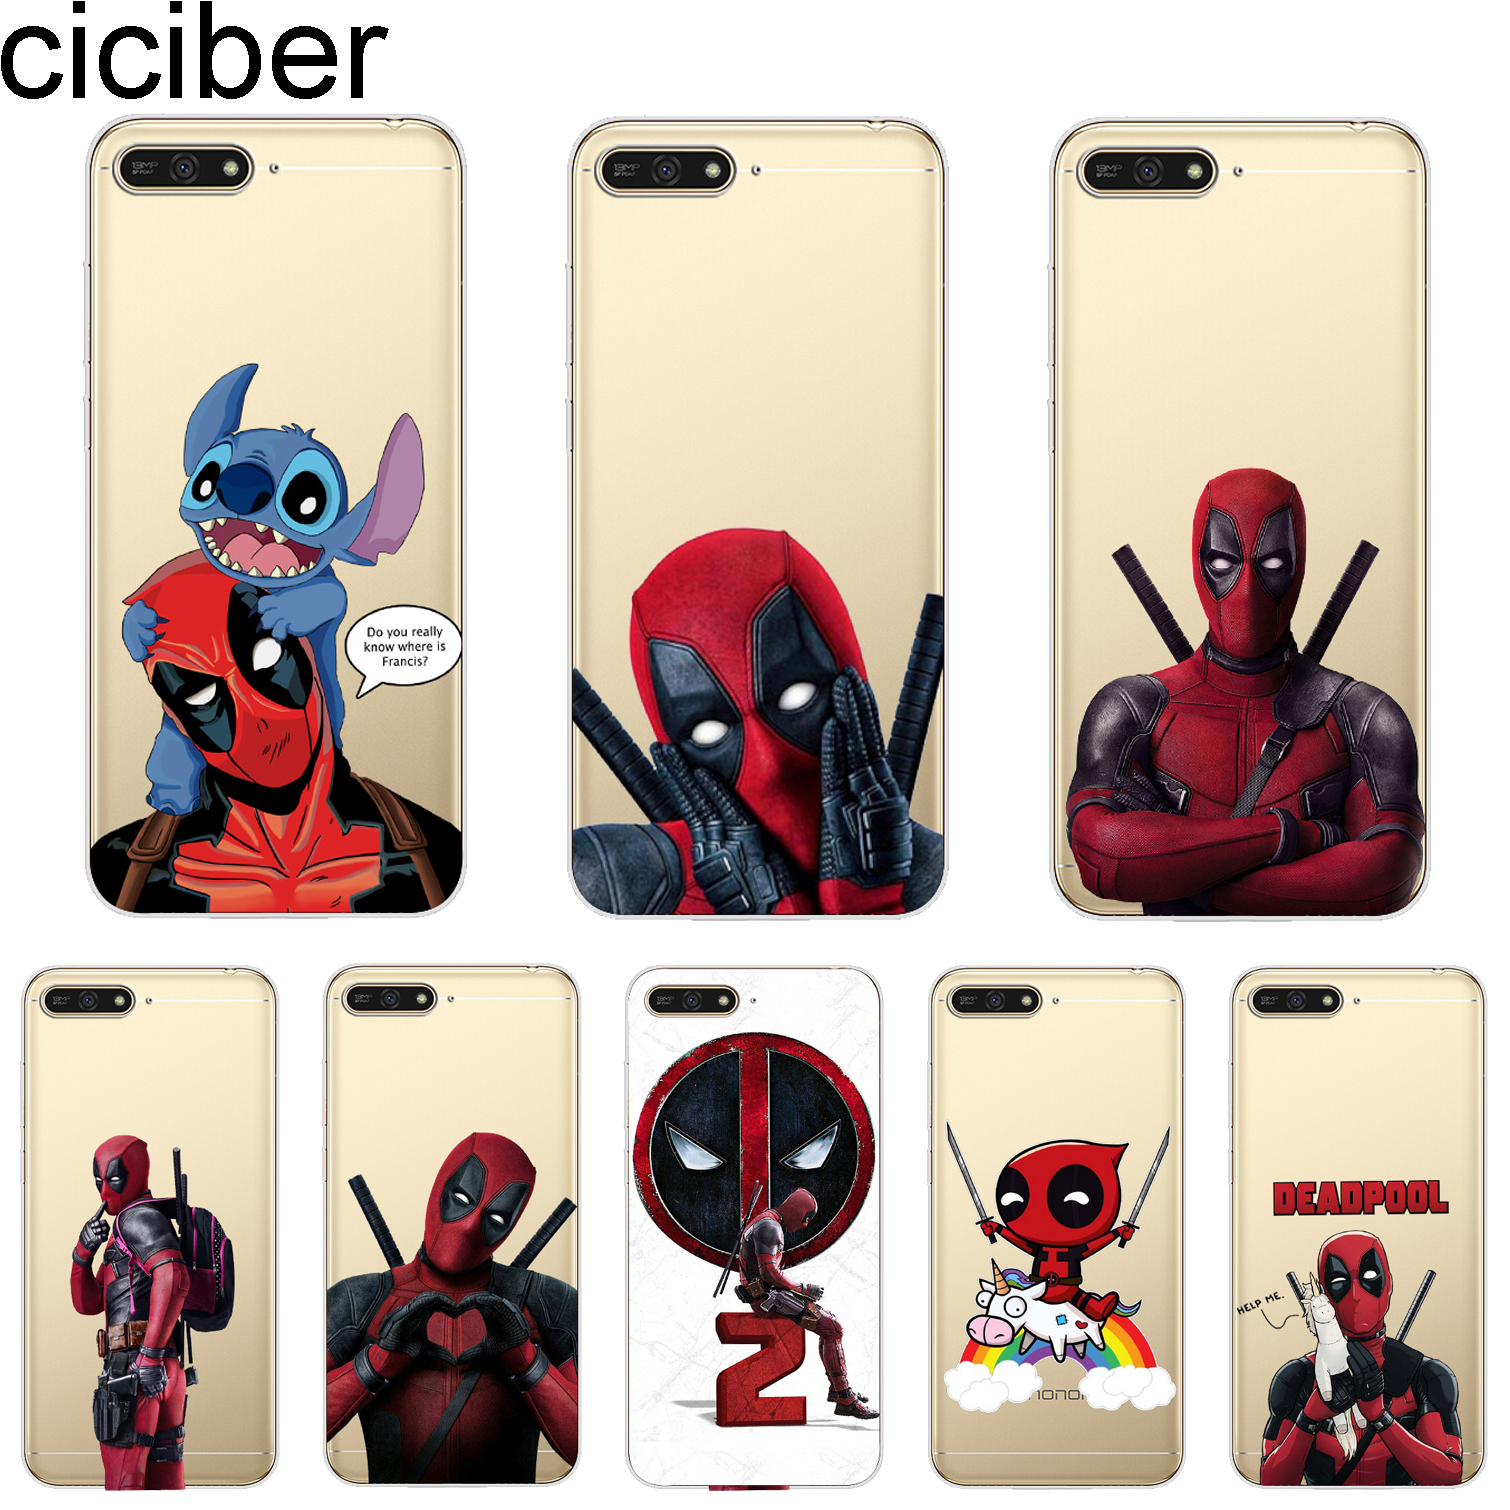 ciciber Cover For <font><b>Huawei</b></font> Y9 <font><b>Y7</b></font> Y6 Y5 Y3 Prime Pro 2018 2017 <font><b>2019</b></font> Phone <font><b>Cases</b></font> <font><b>Marvel</b></font> Deadpool Shell Capa Coque Soft Silicone TPU image